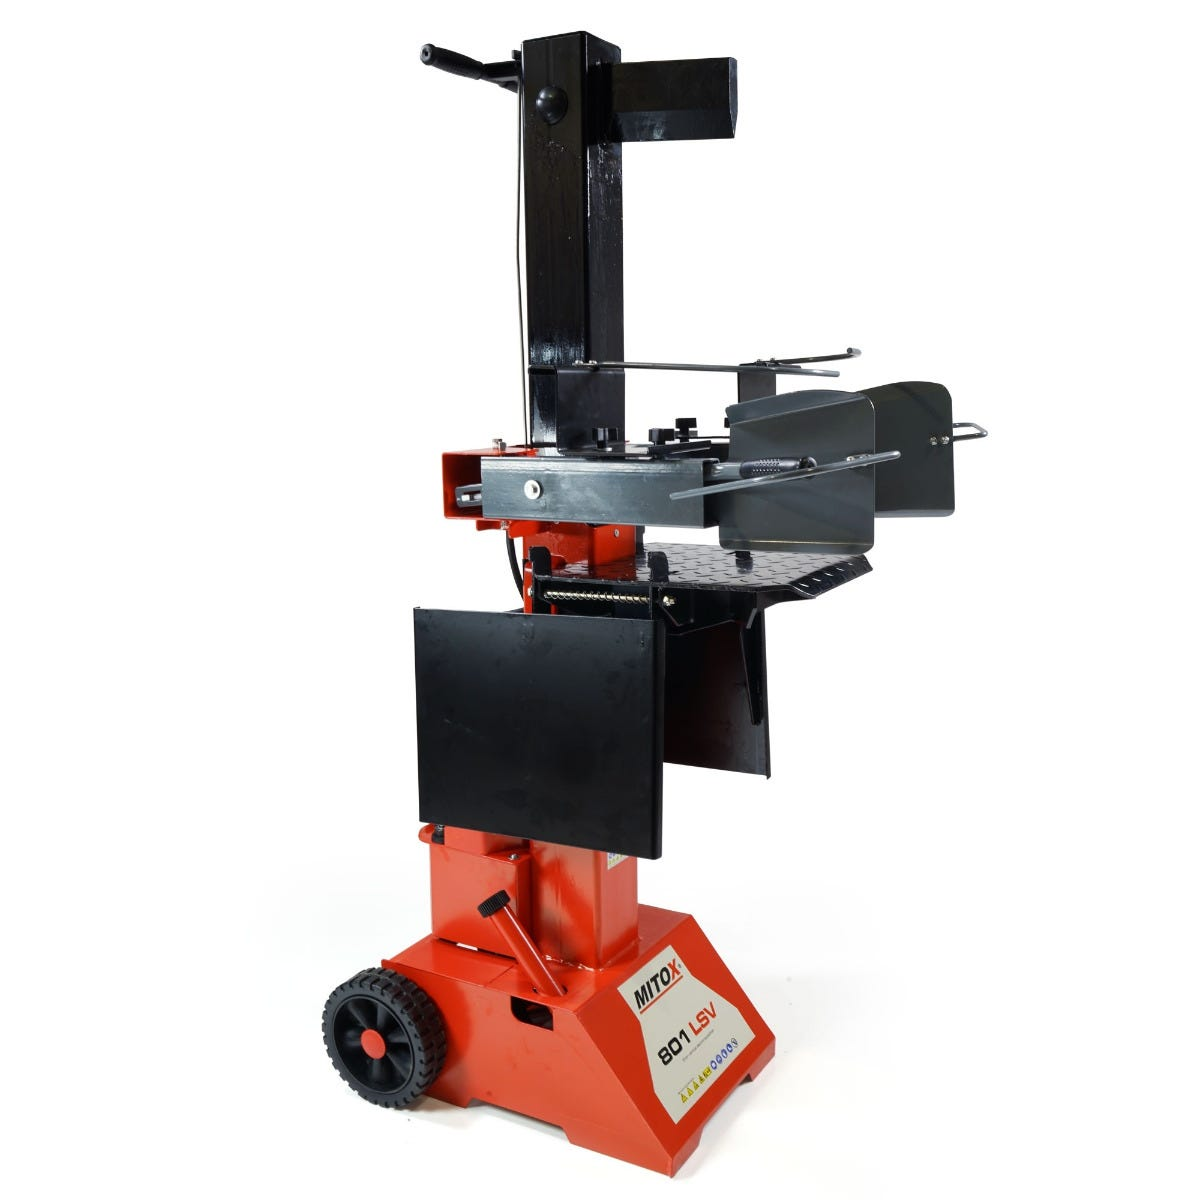 Mitox LS801 8T Log Splitter